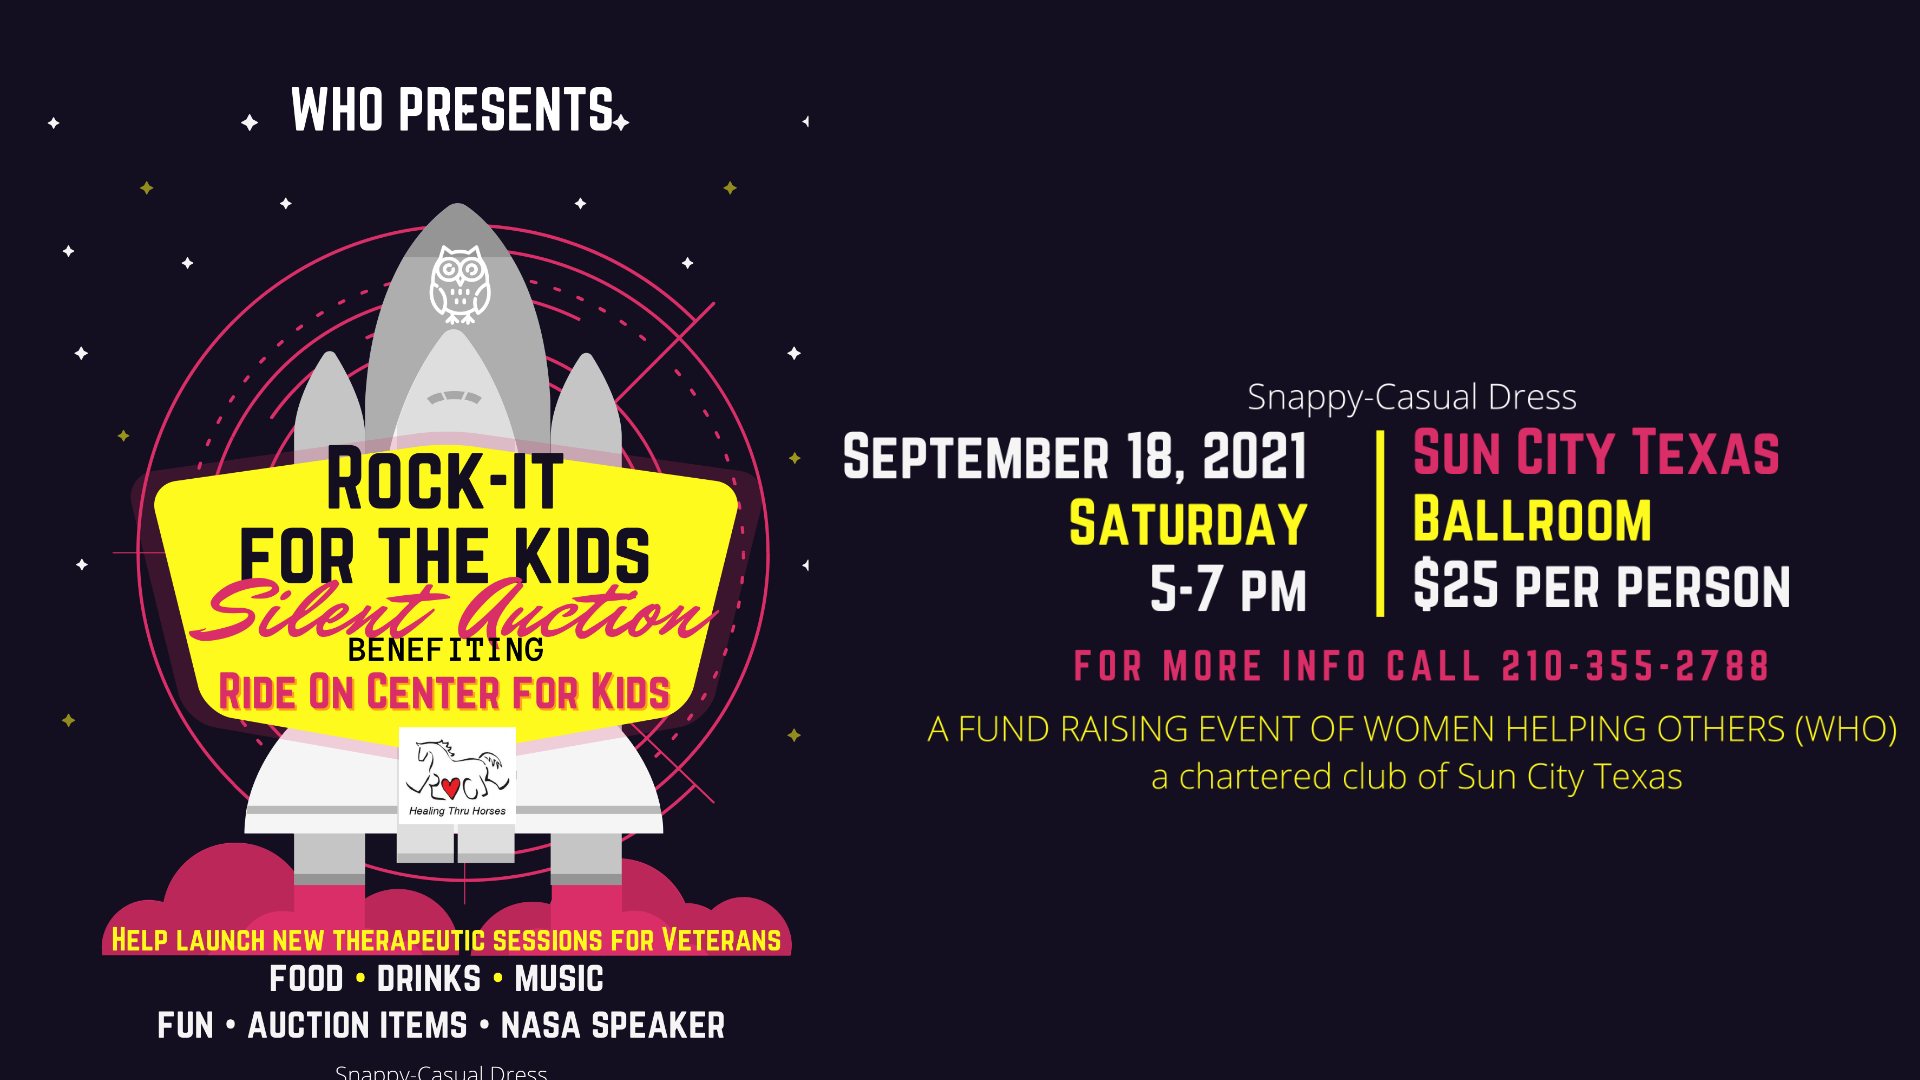 WHO Presents Rock-It For the Kids Silent Auction on September 18, 2021 at the Sun City Ballroom